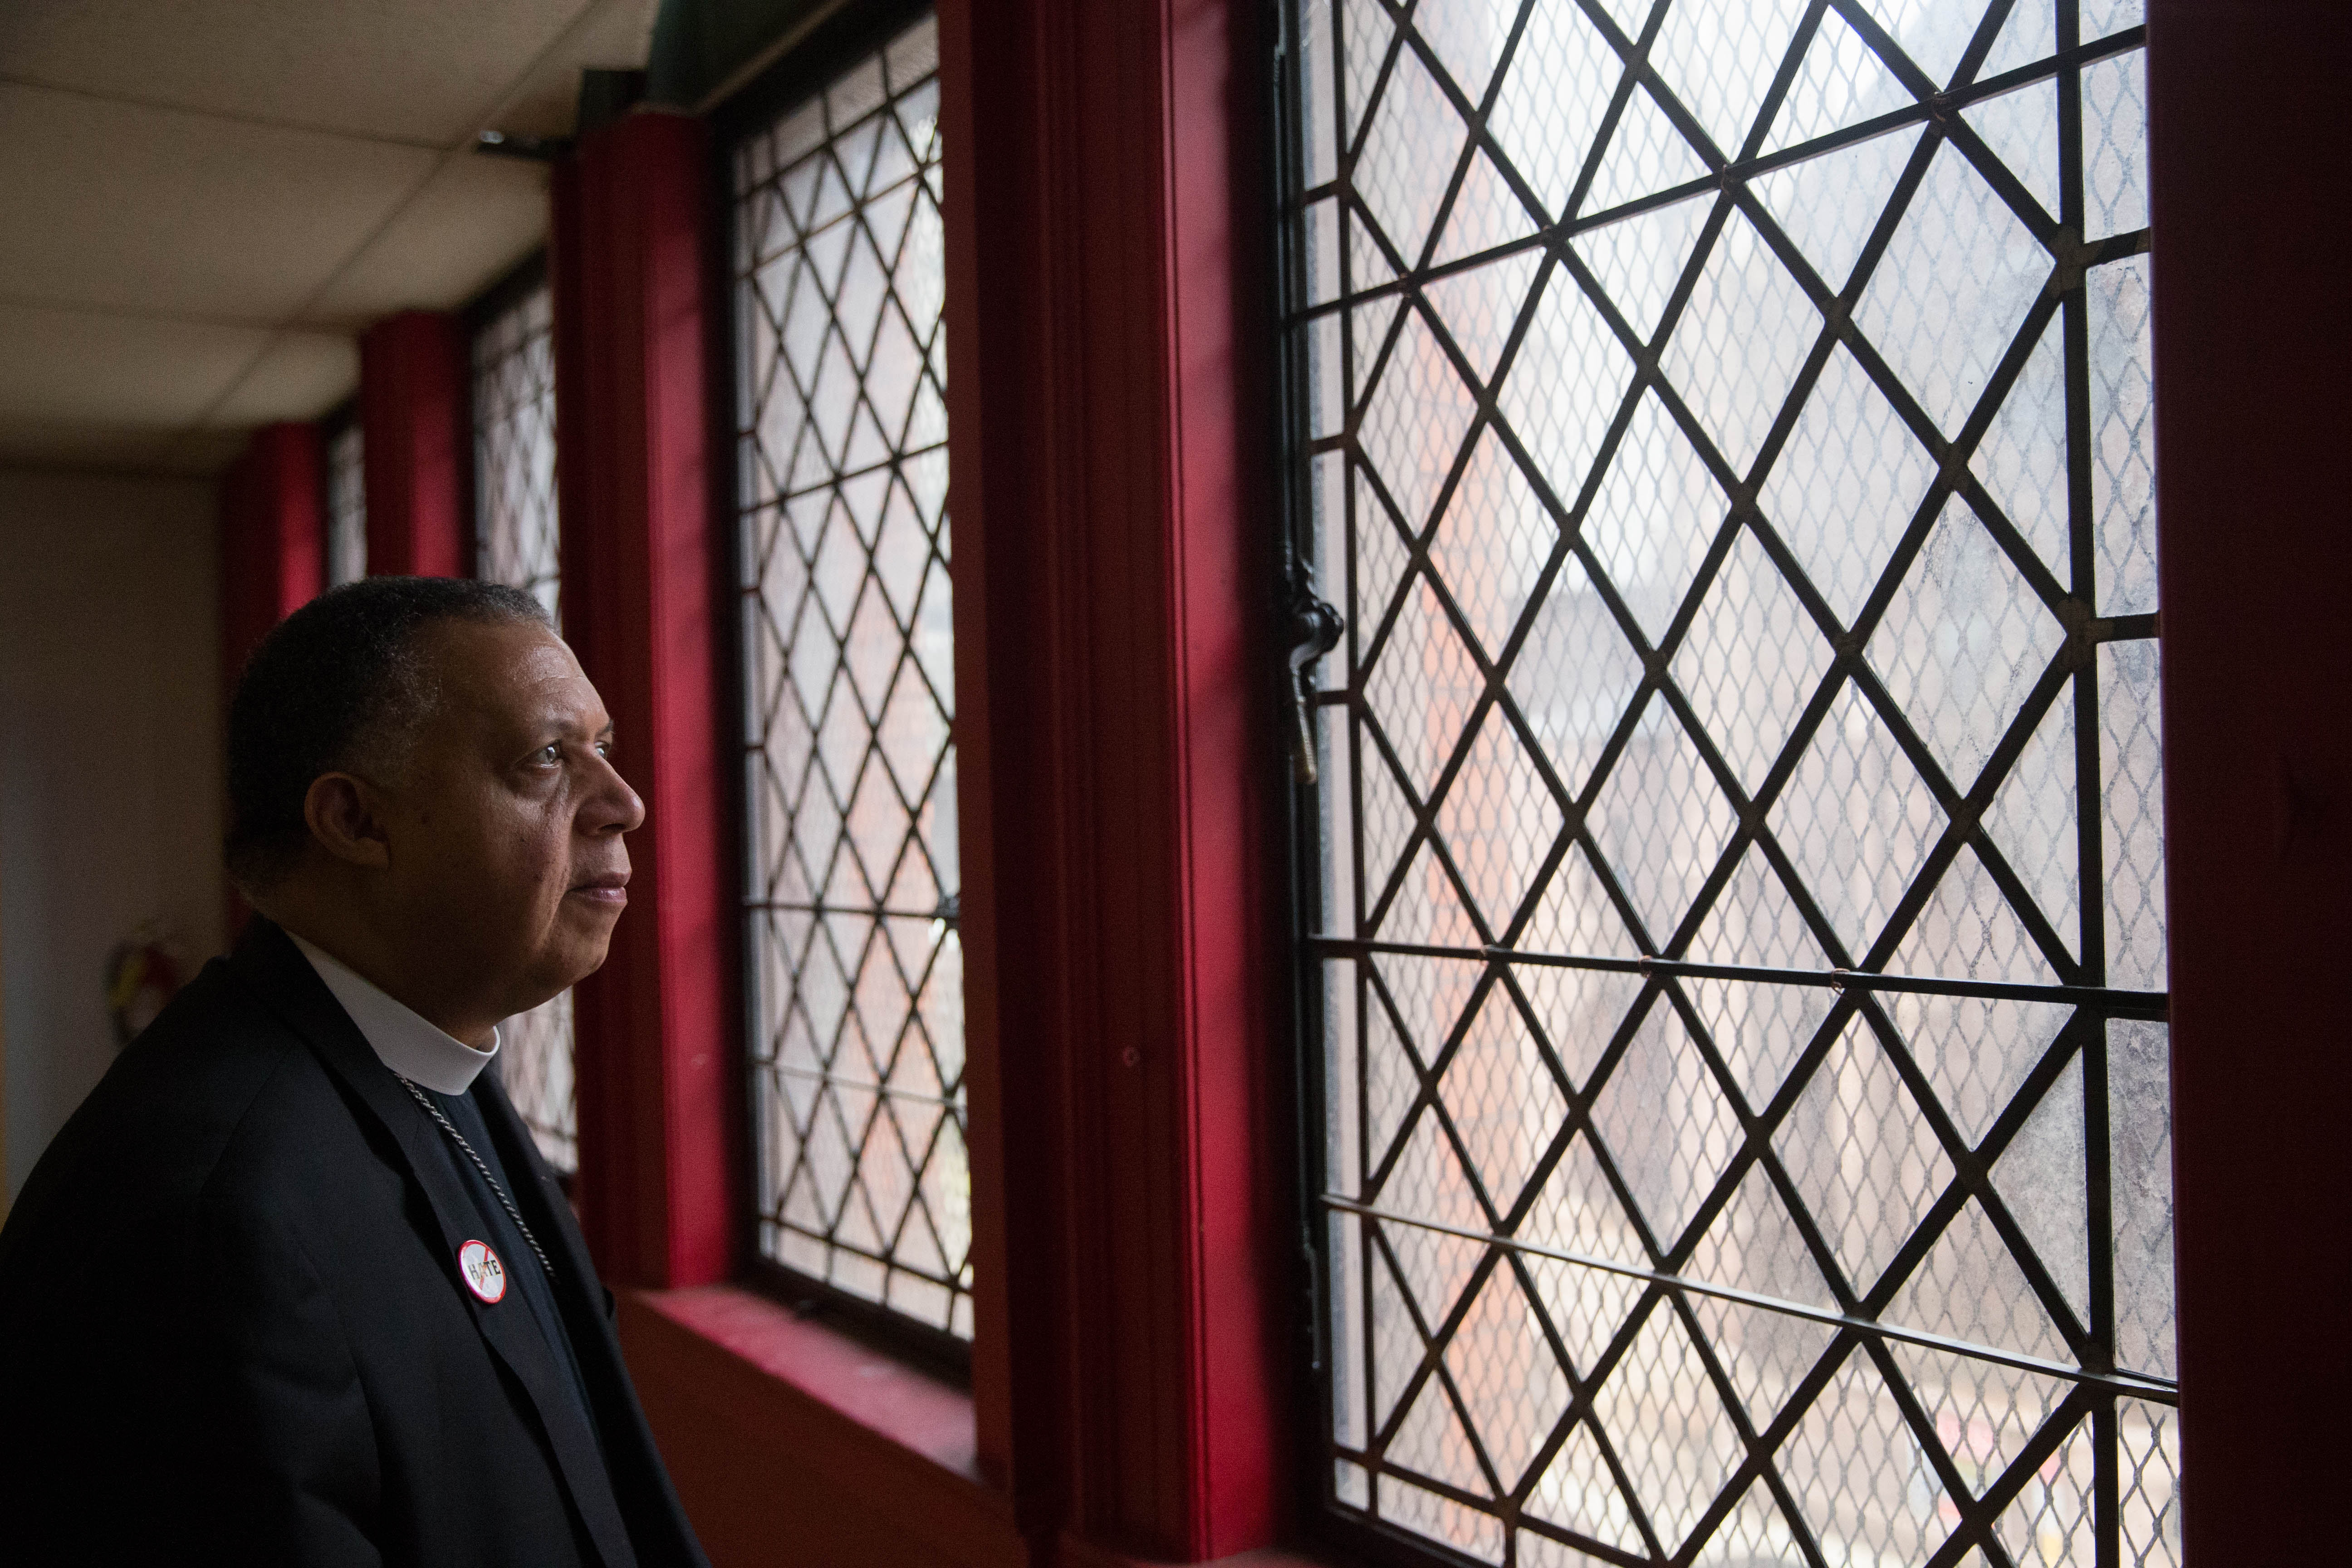 The Very Rev. Will H. Mebane, Jr., interim dean at St. Paul's Cathedral, looks over a space in the former church office and educational building at 128 Pearl St. which the church is planning to develop into luxury apartments.  (Derek Gee/Buffalo News)